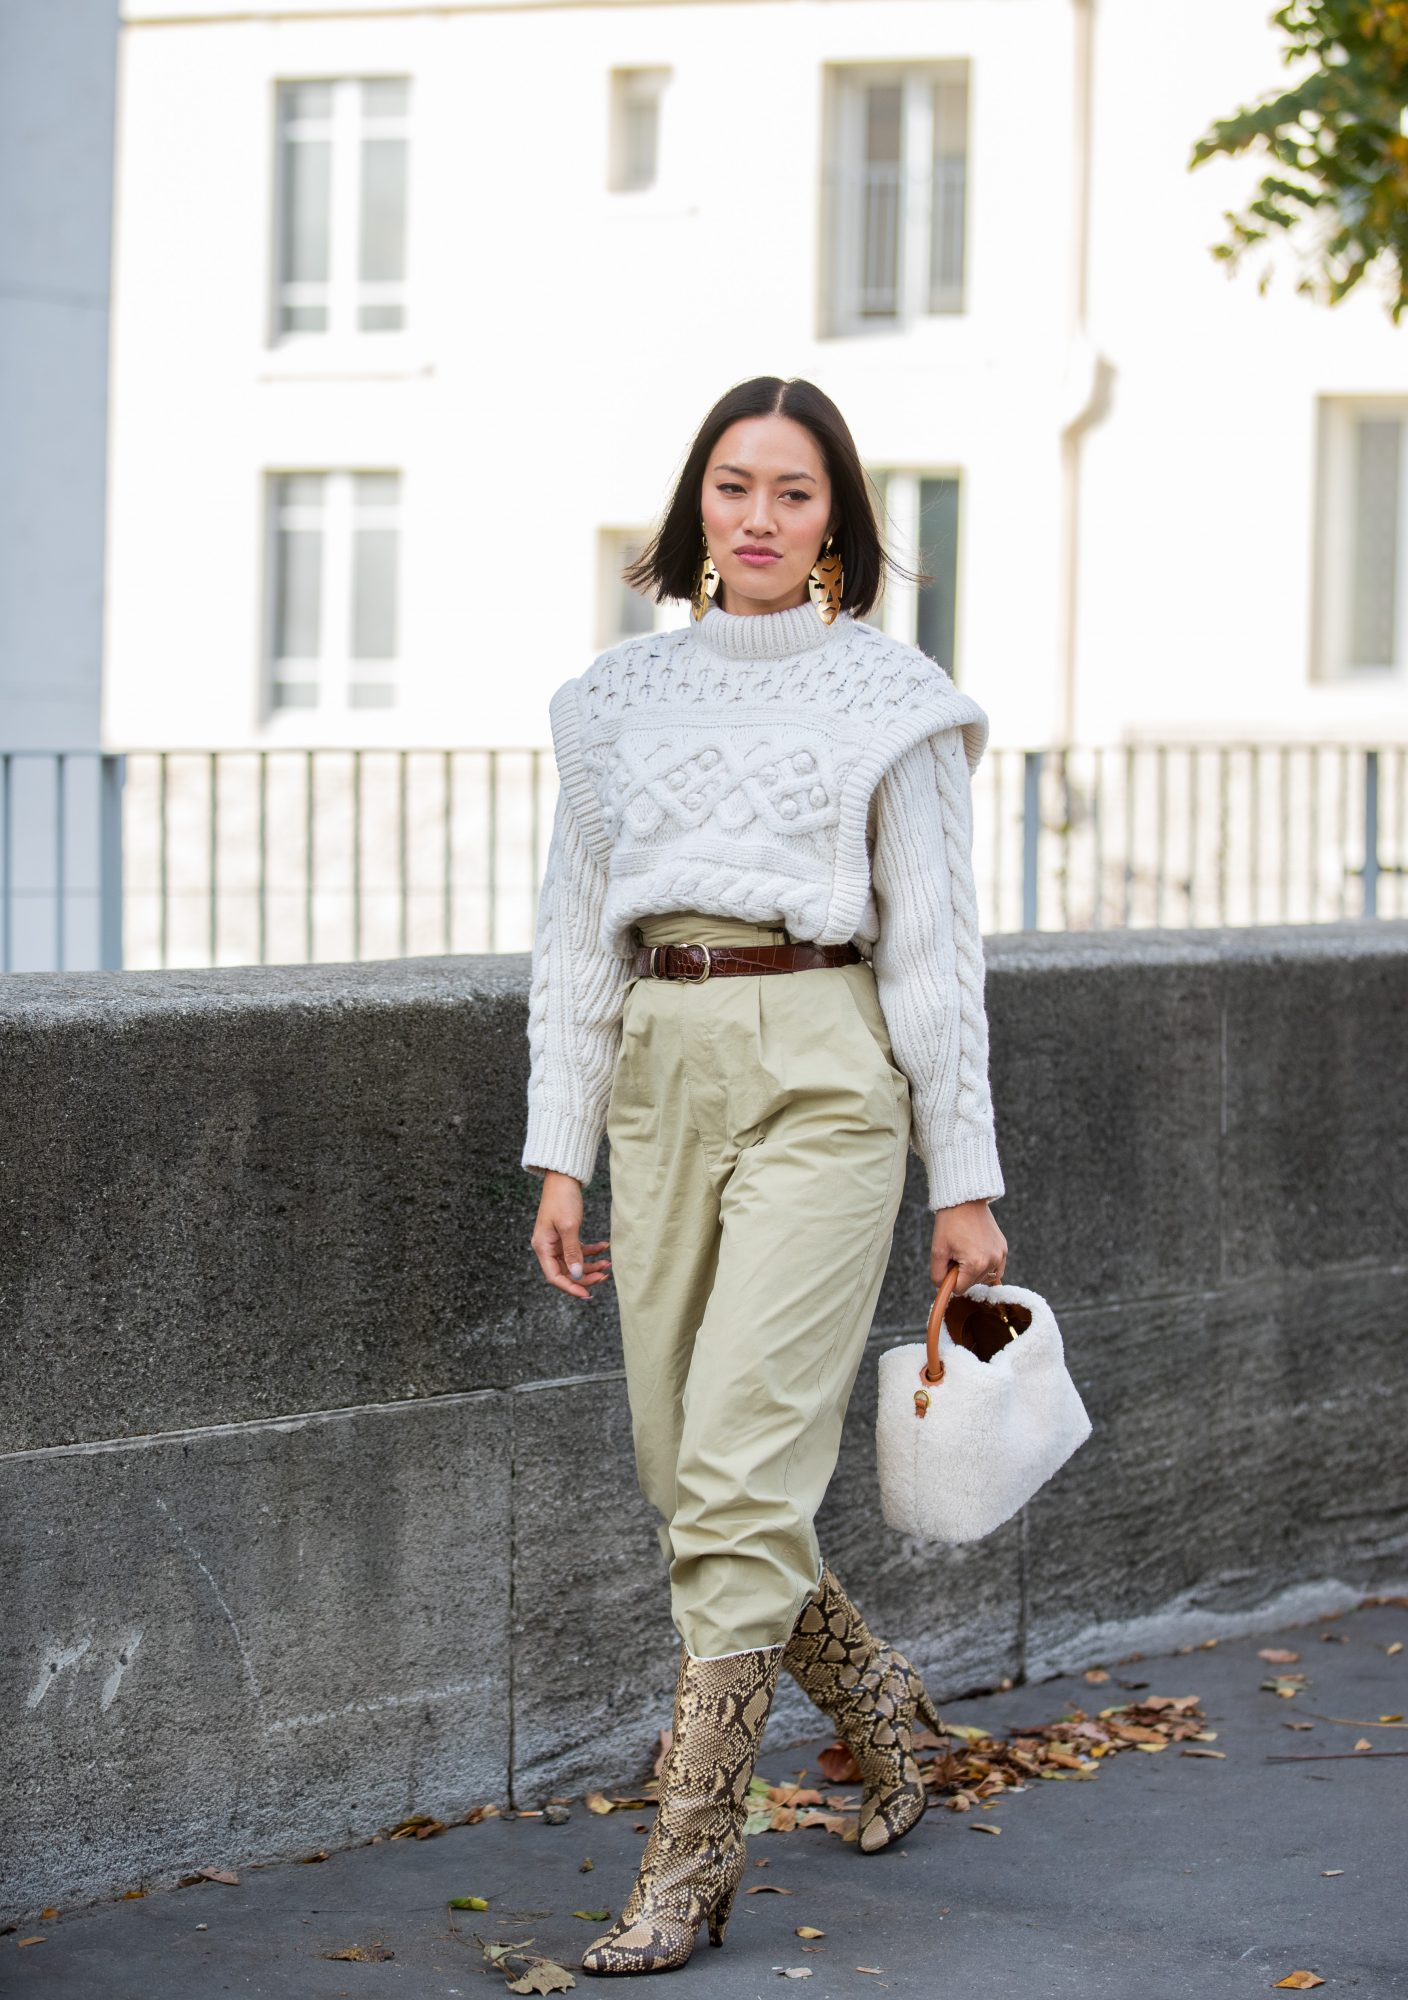 Pants tucked into boots outfit idea